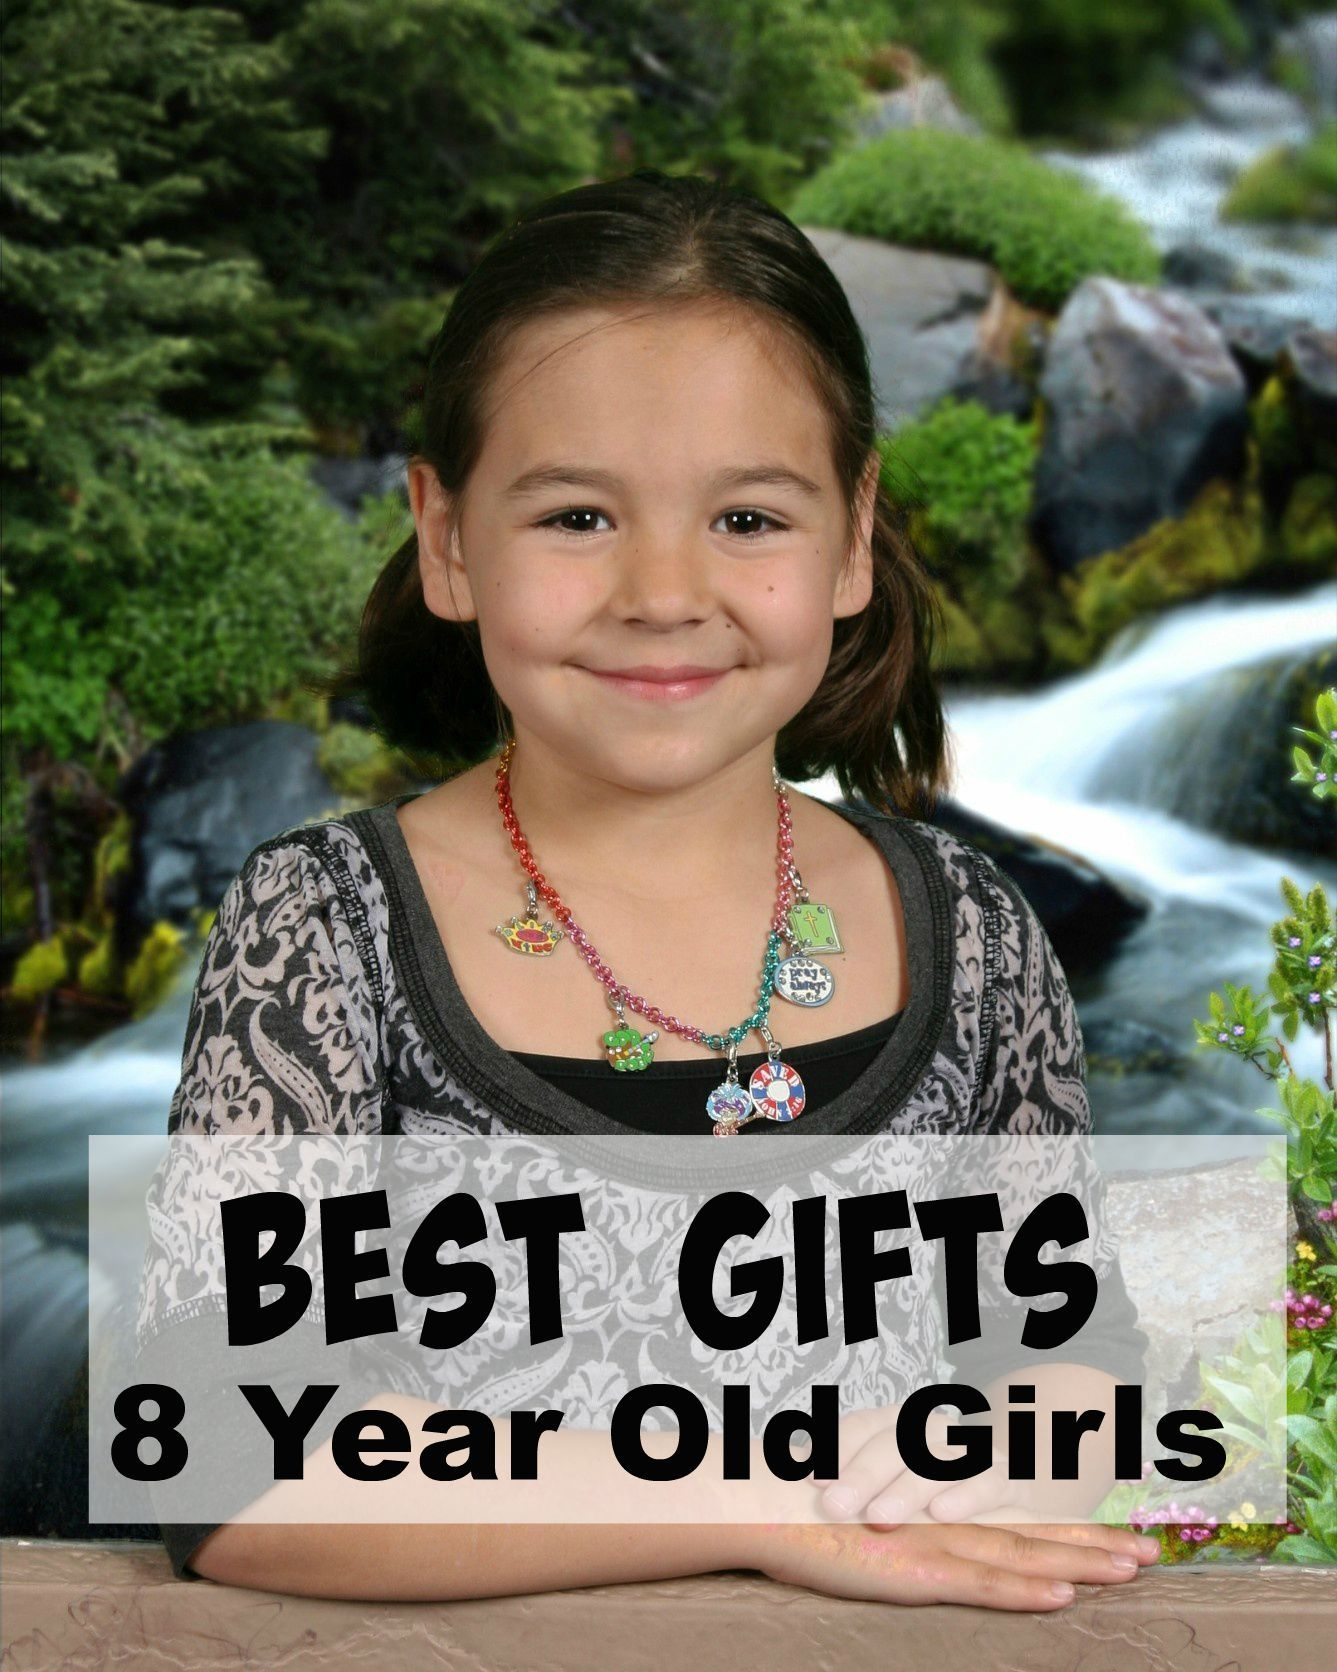 25 Spectacular T Ideas For 8 Year Old Girls That Will